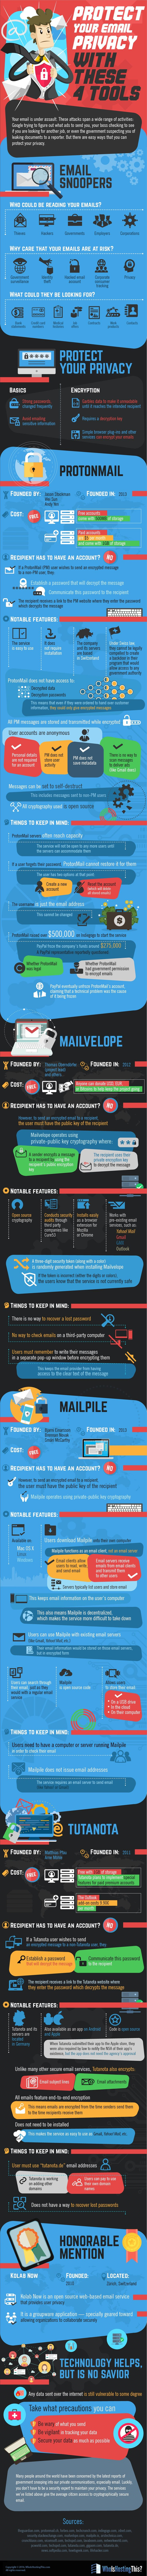 4 Email Privacy Tools to Keep Your Email Secure #Infographic #Security #Email…